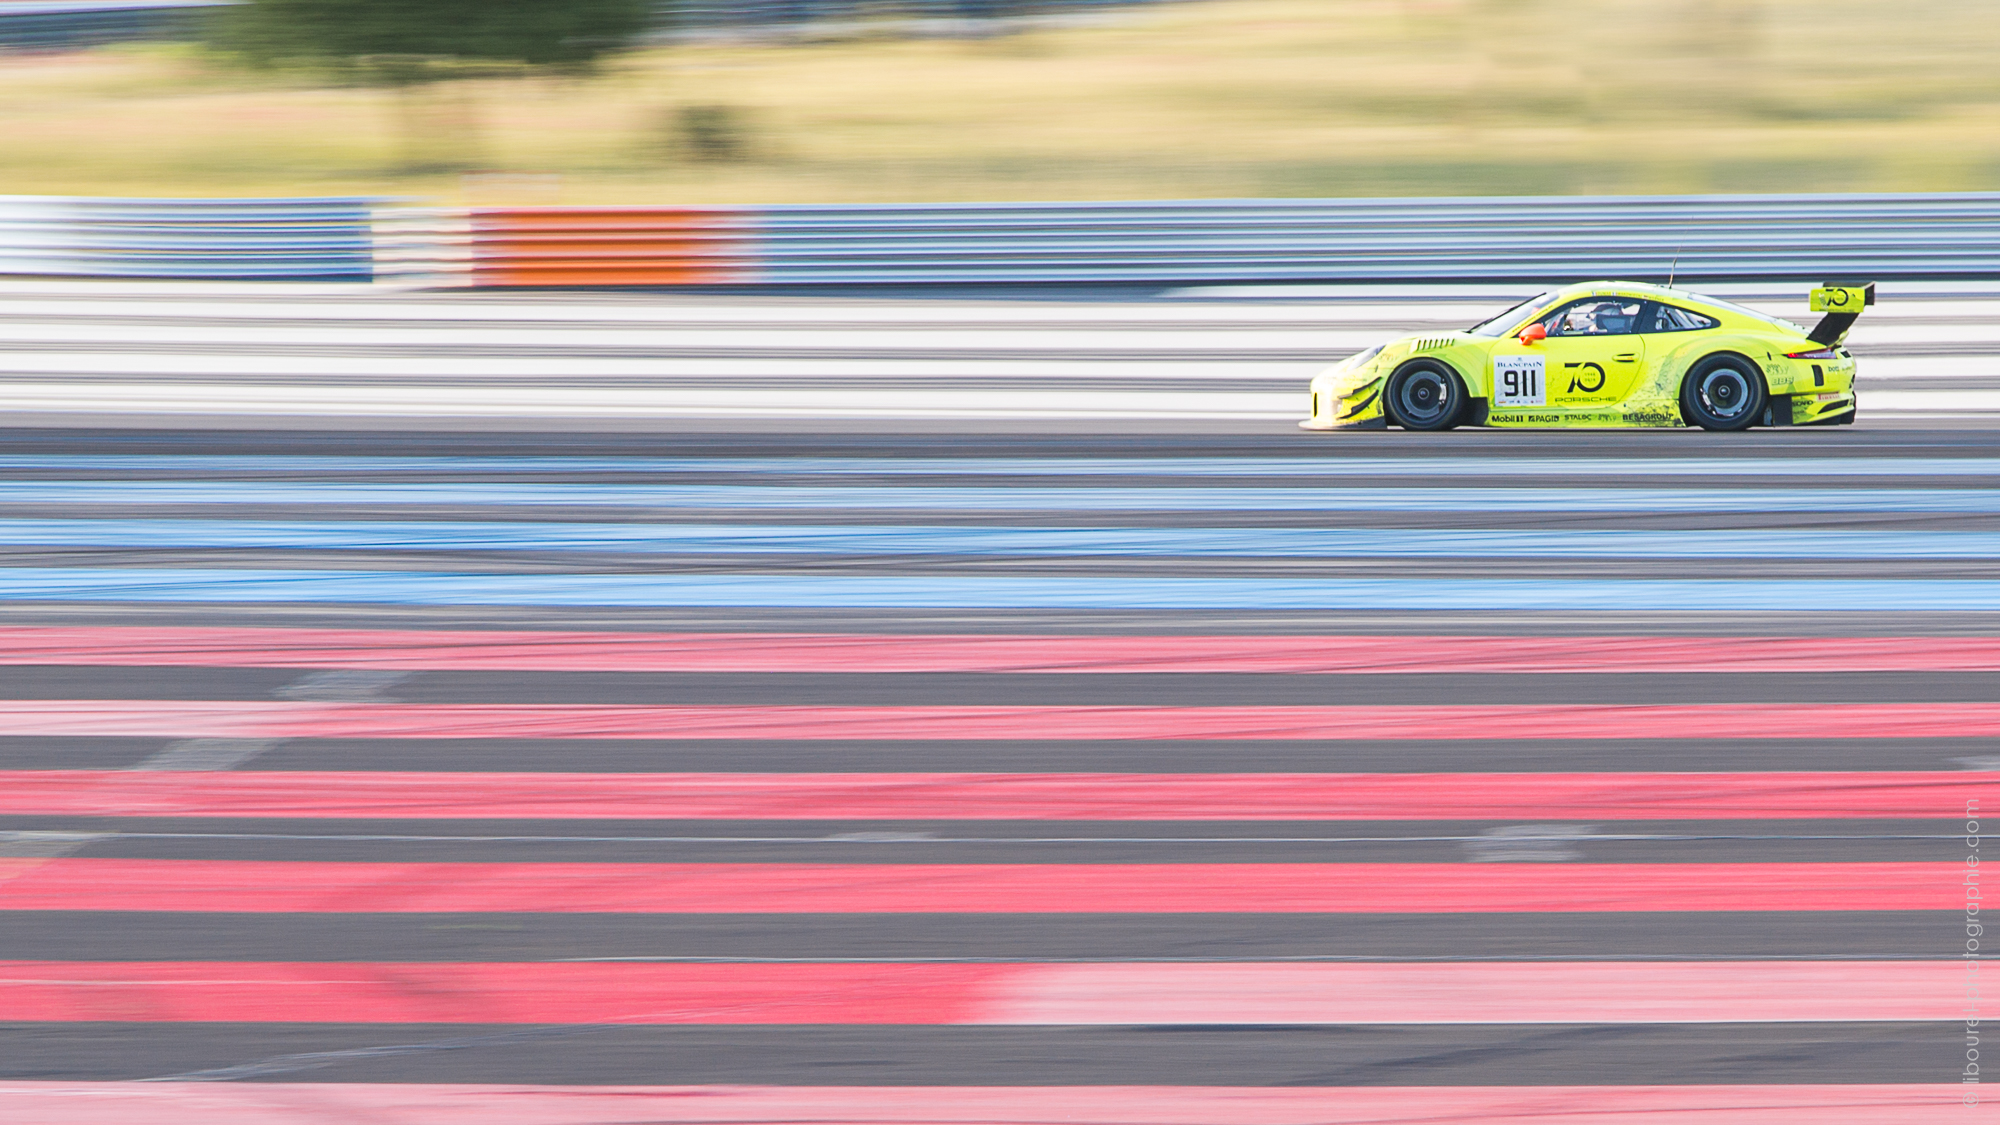 Manthey racing - Paul Ricard